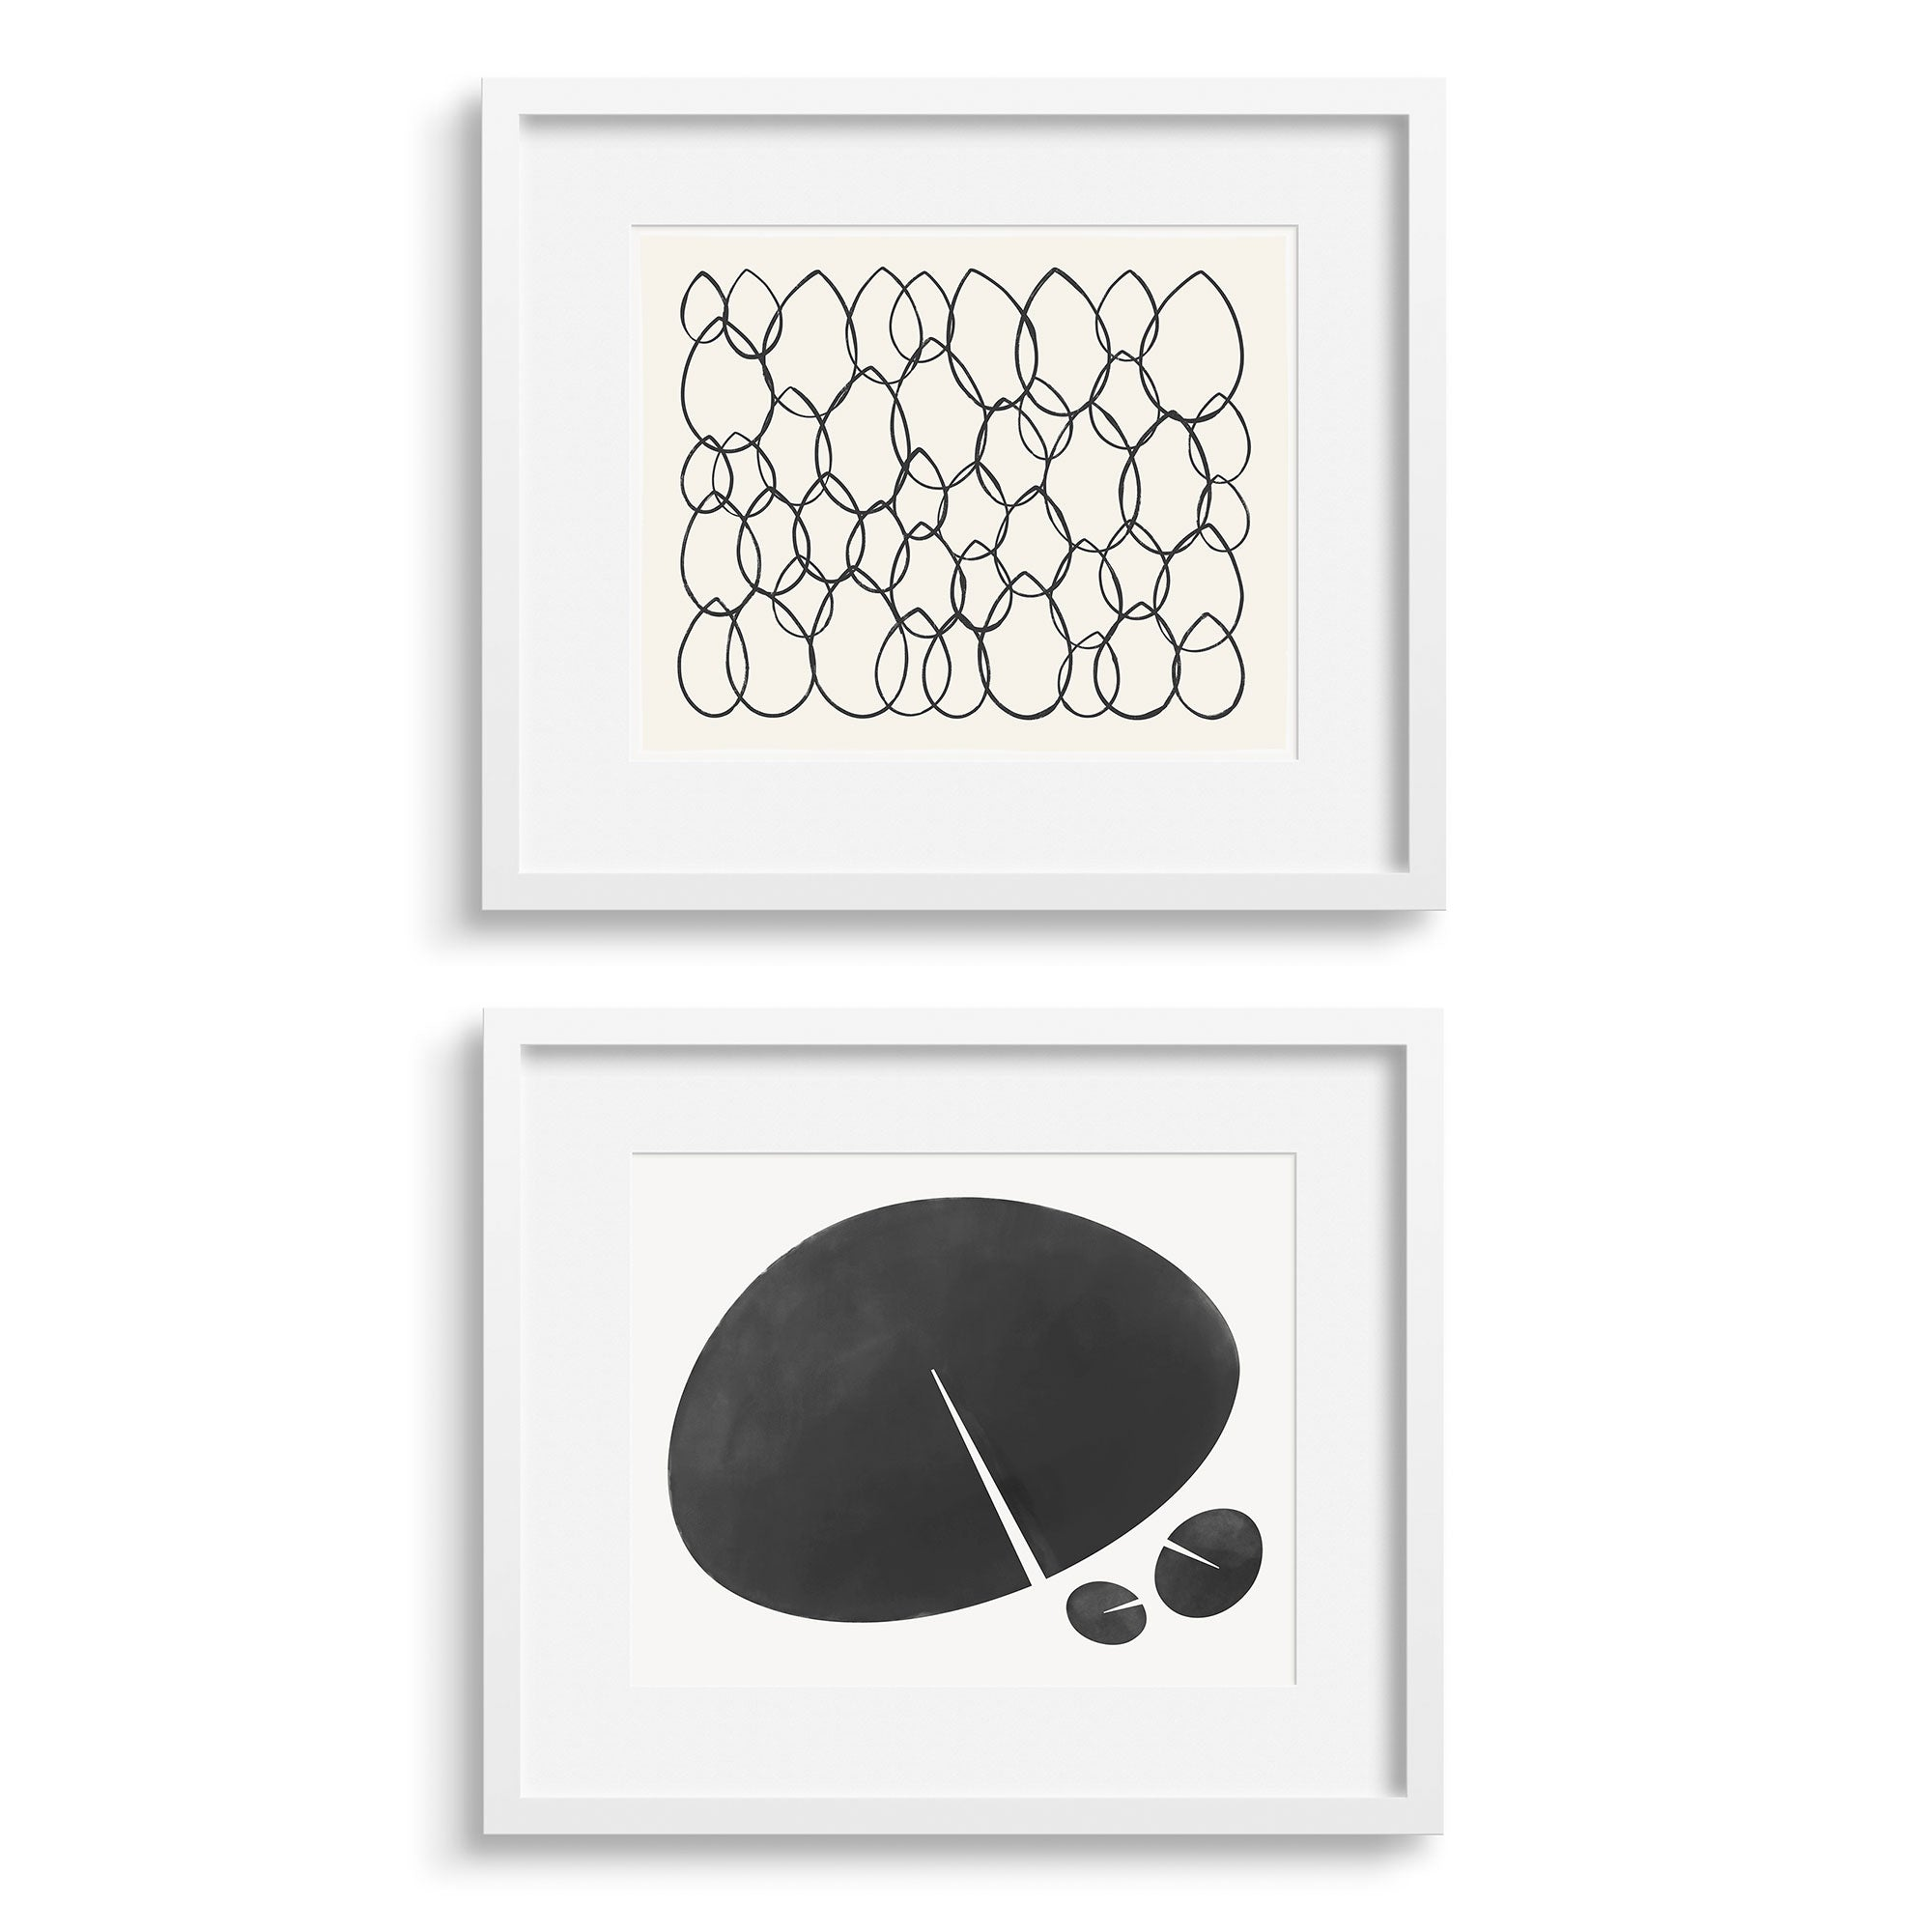 Glory Graphic and Lily Leaf Graphic modern graphic prints by Janet Taylor / Household Art.